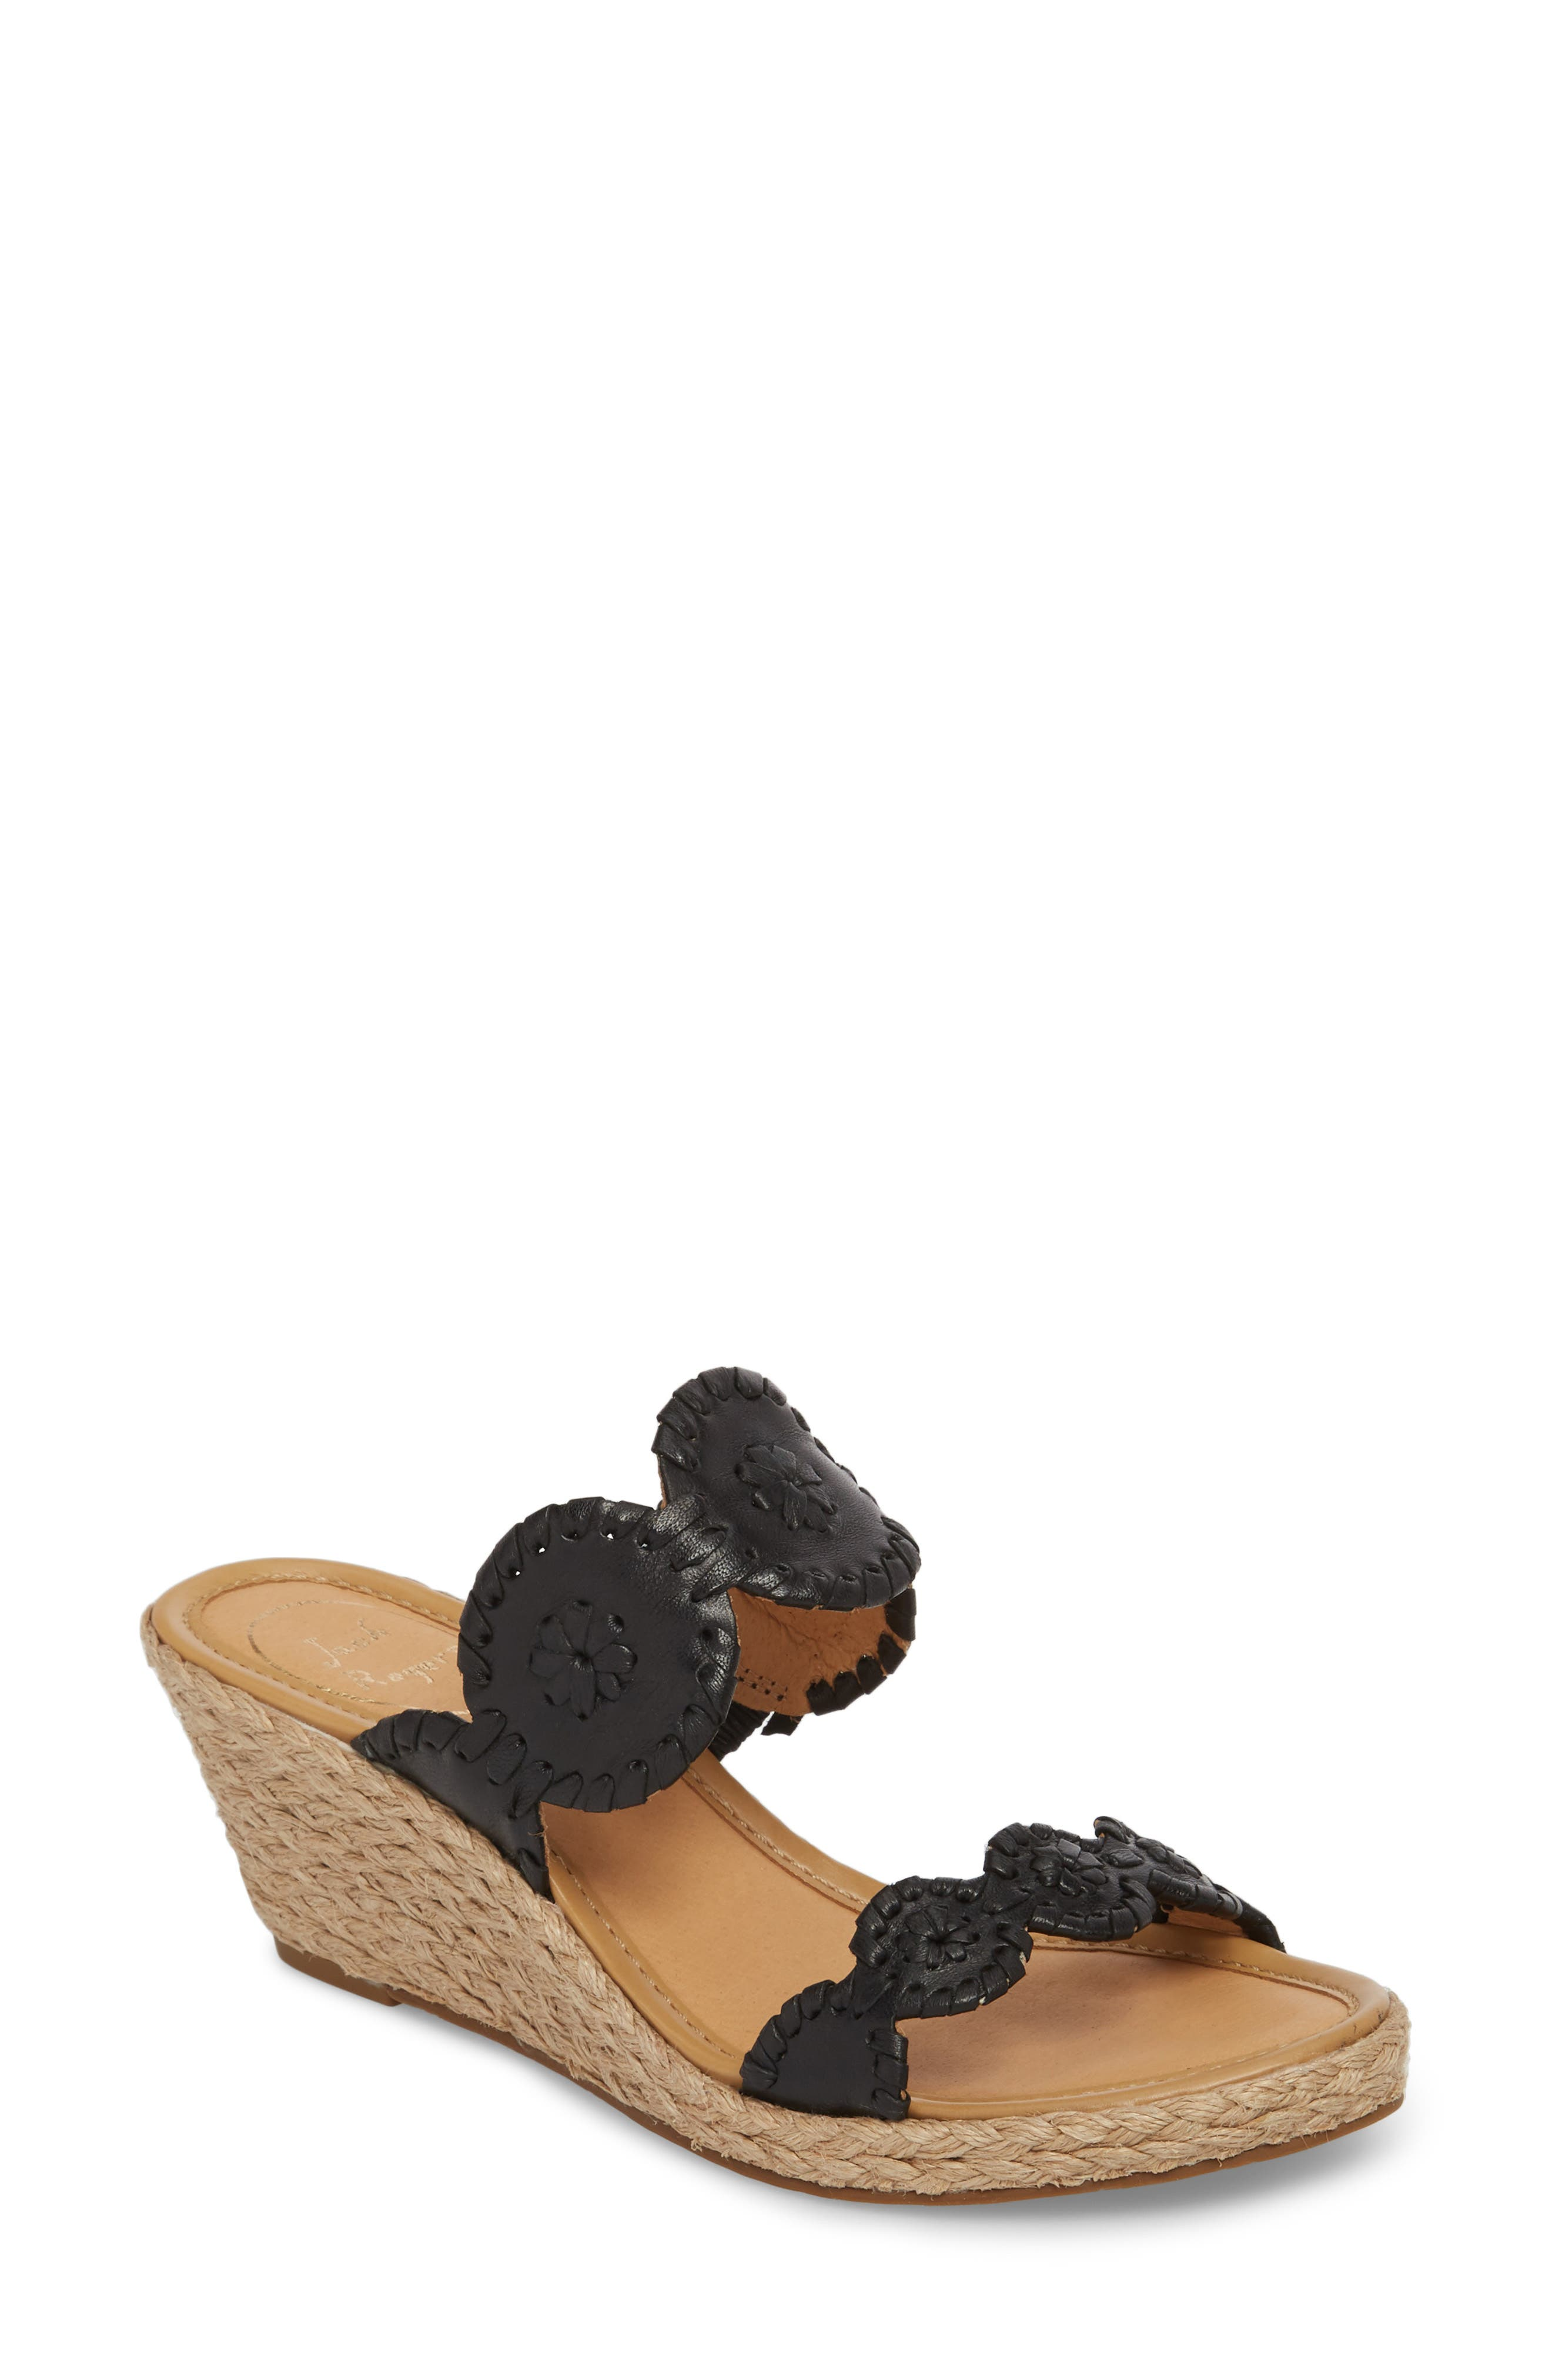 'Shelby' Whipstitched Wedge Sandal,                         Main,                         color, Black Leather